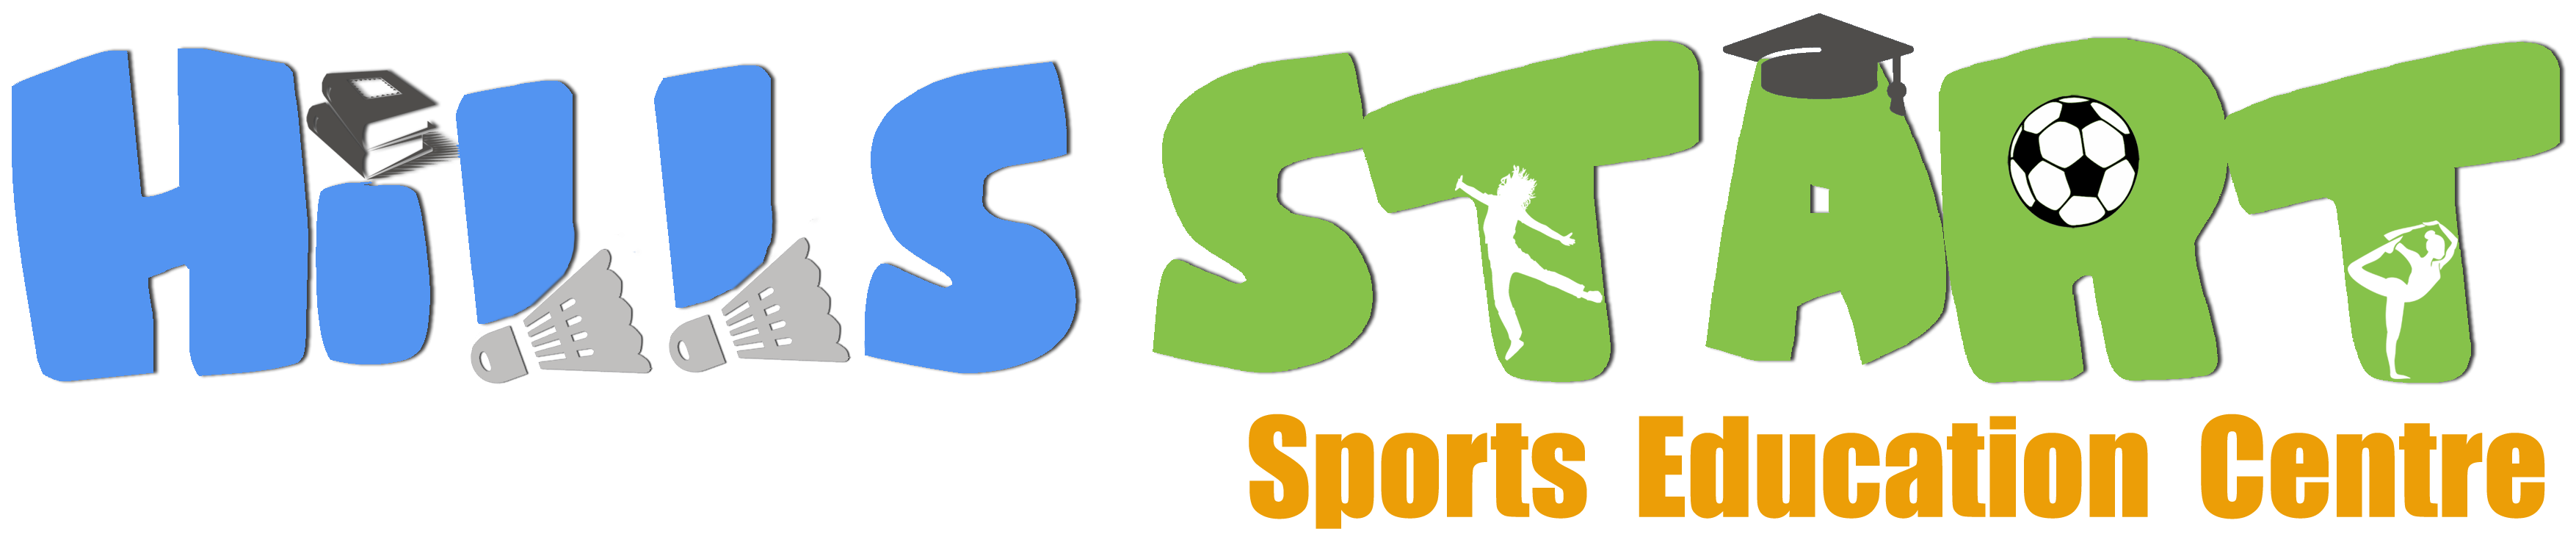 Hills start sports education. Fencing clipart opponent